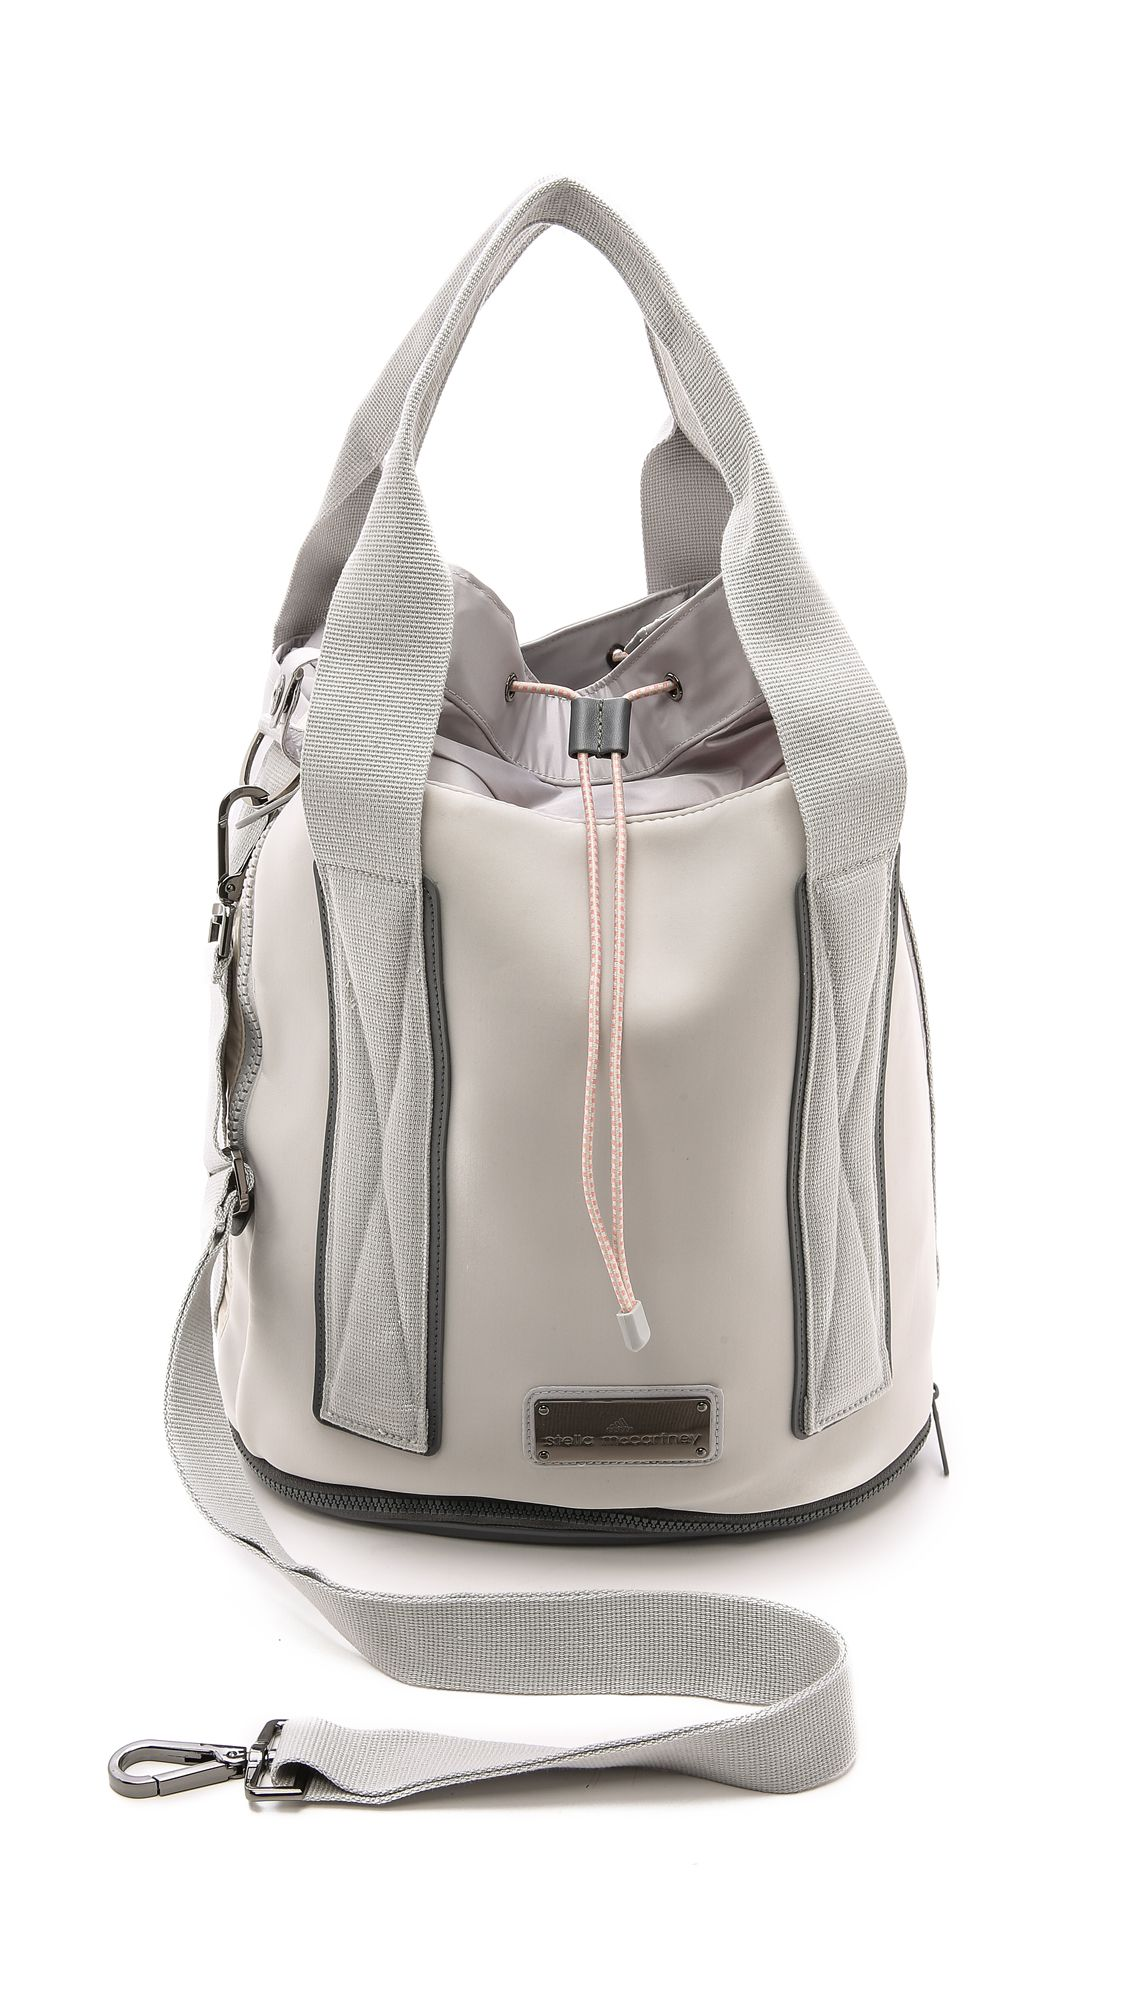 f09f00fdca91 adidas by Stella McCartney Tennis Bag- amazing how she can design a sport  bag and make it look like a chic and trendy statement bag.